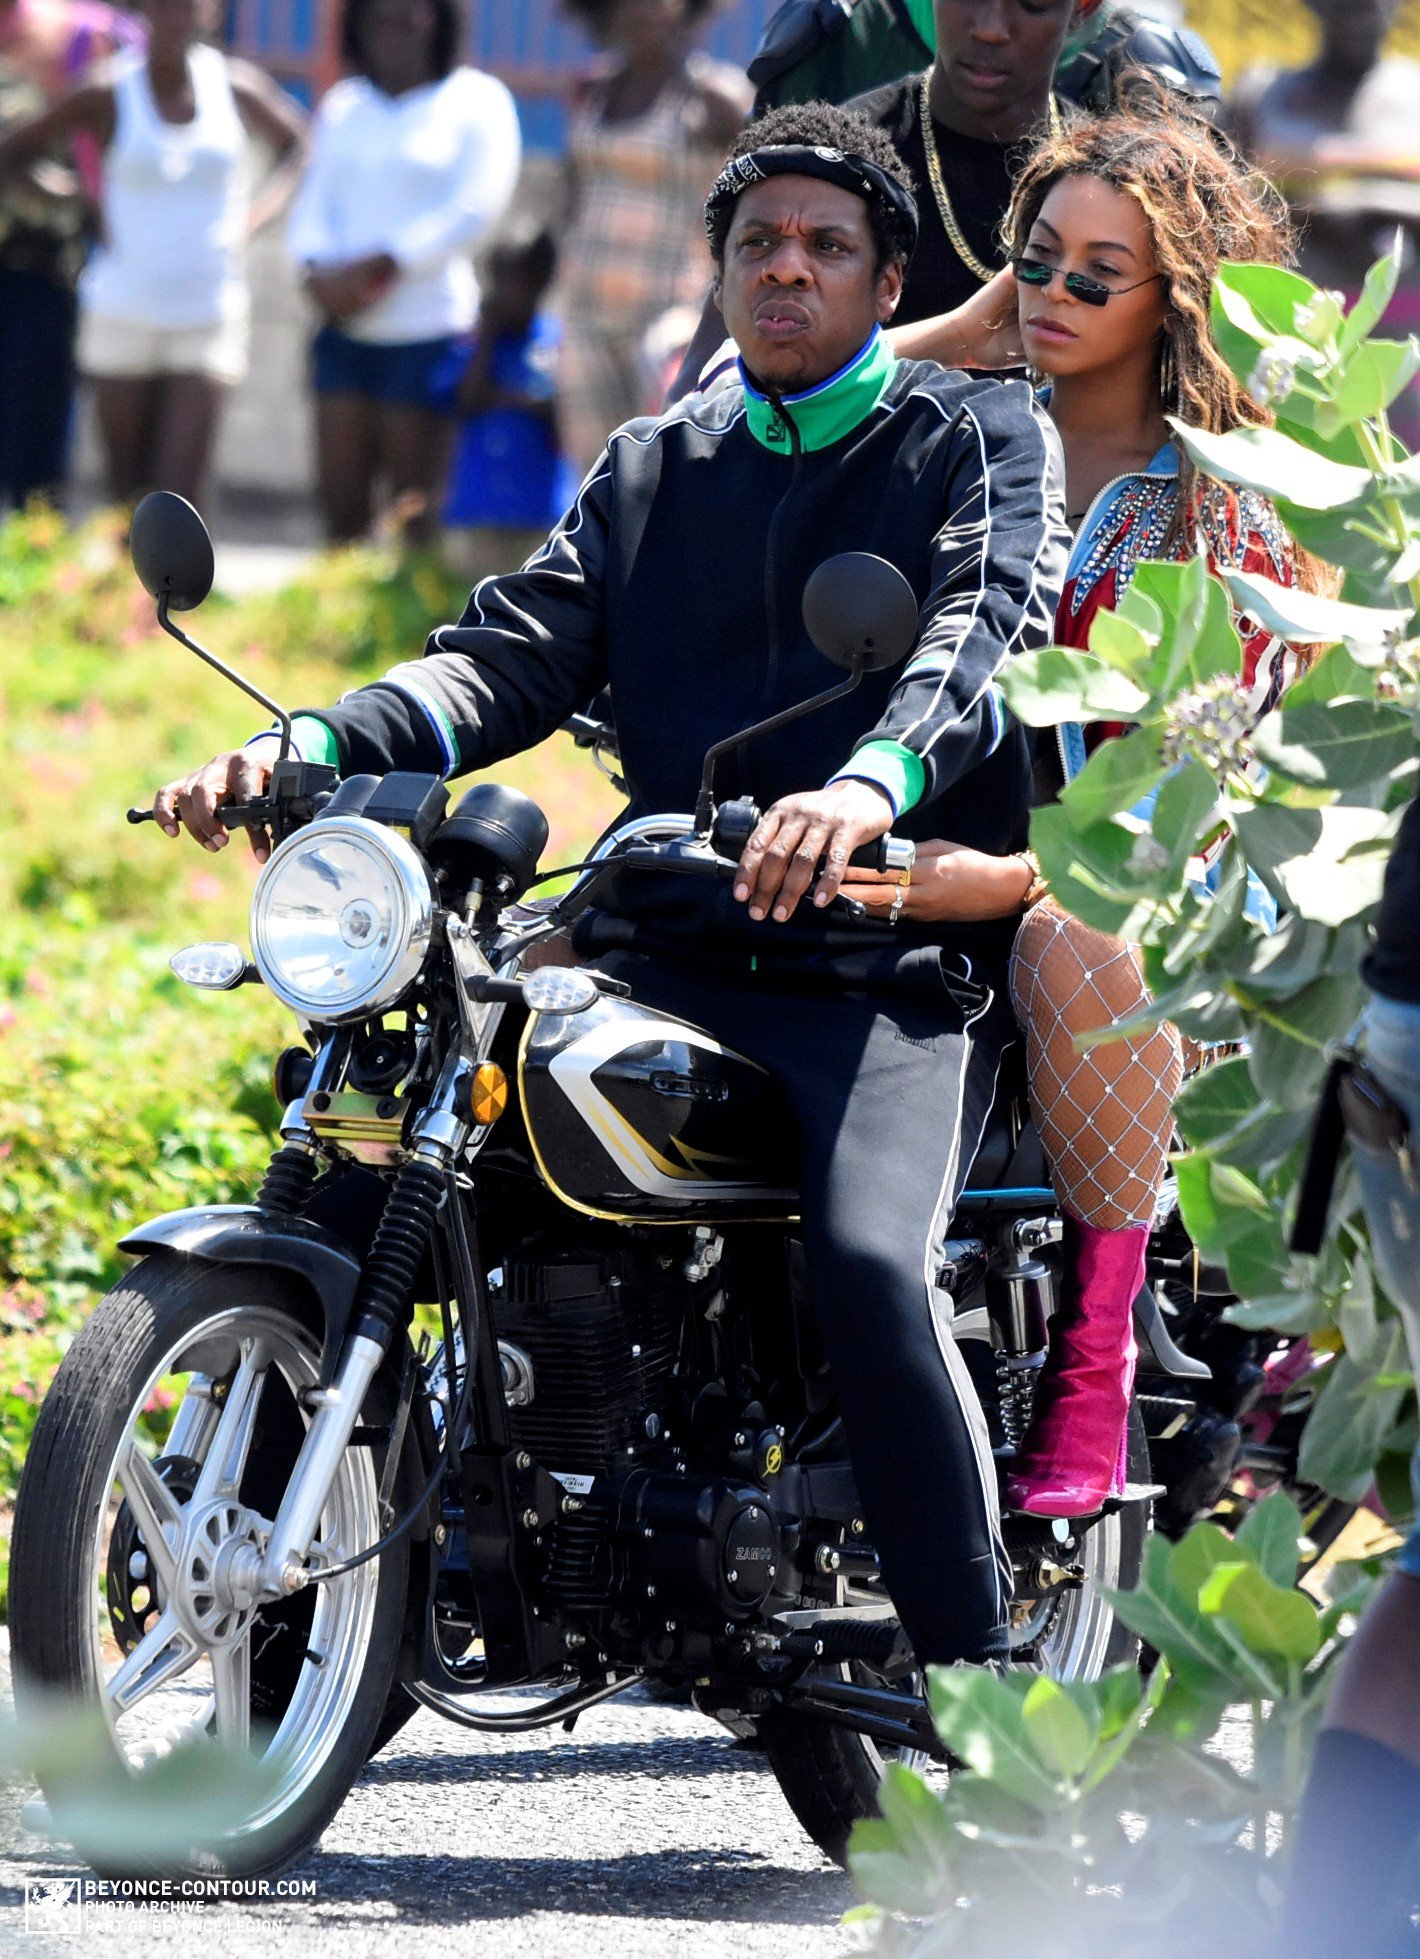 NEW PHOTOS: Beyoncé & JAY-Z on the set of a new video in Jamaica (Mar. 20) https://t.co/H6aJPLDMMO https://t.co/UVbwmOu3l8